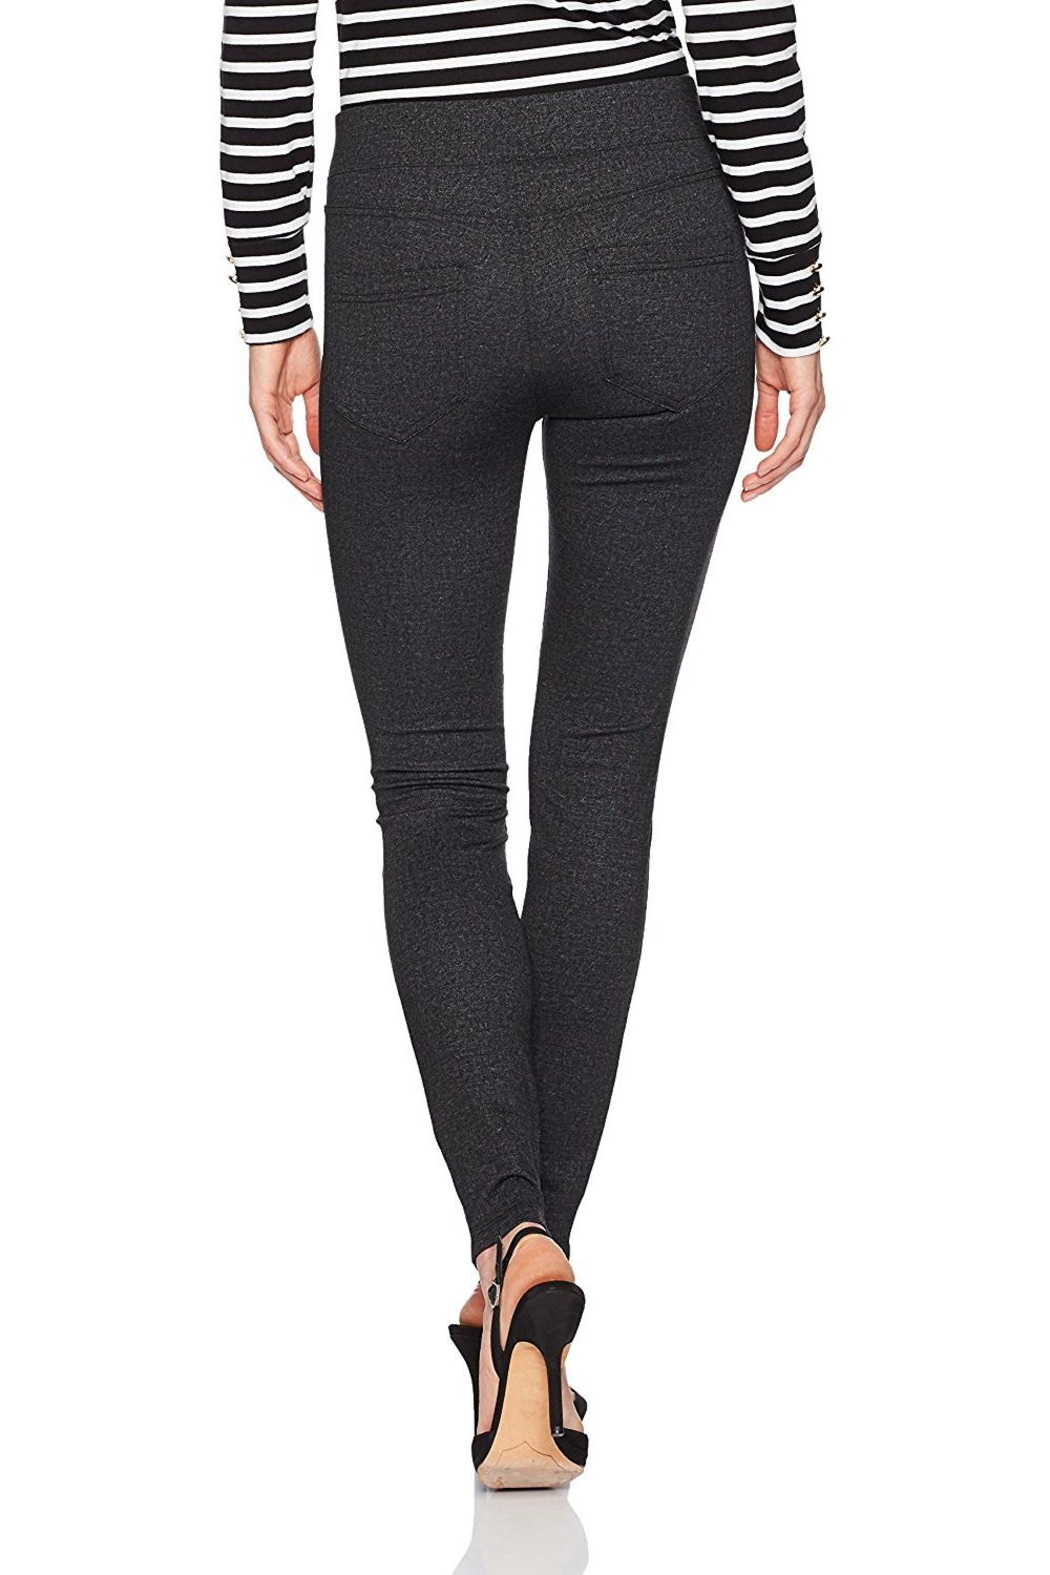 Liverpool Jeans Company Ponte Knit Leggings - Front Full Image